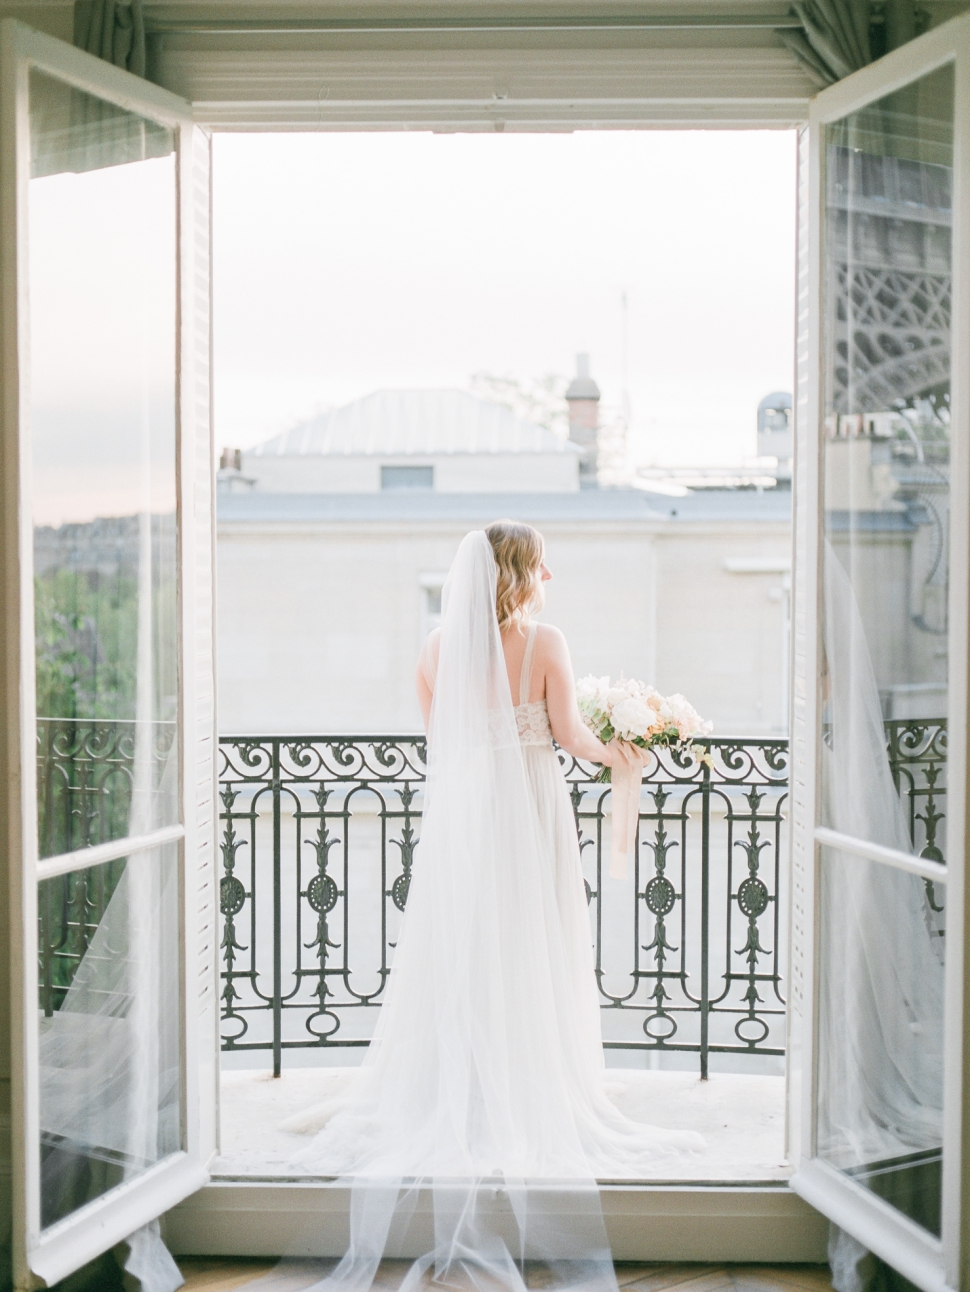 Paris-France-Destination-Wedding-Photographer-Cassi-Claire-Shangri-La-Paris-Wedding-Photos_017.jpg